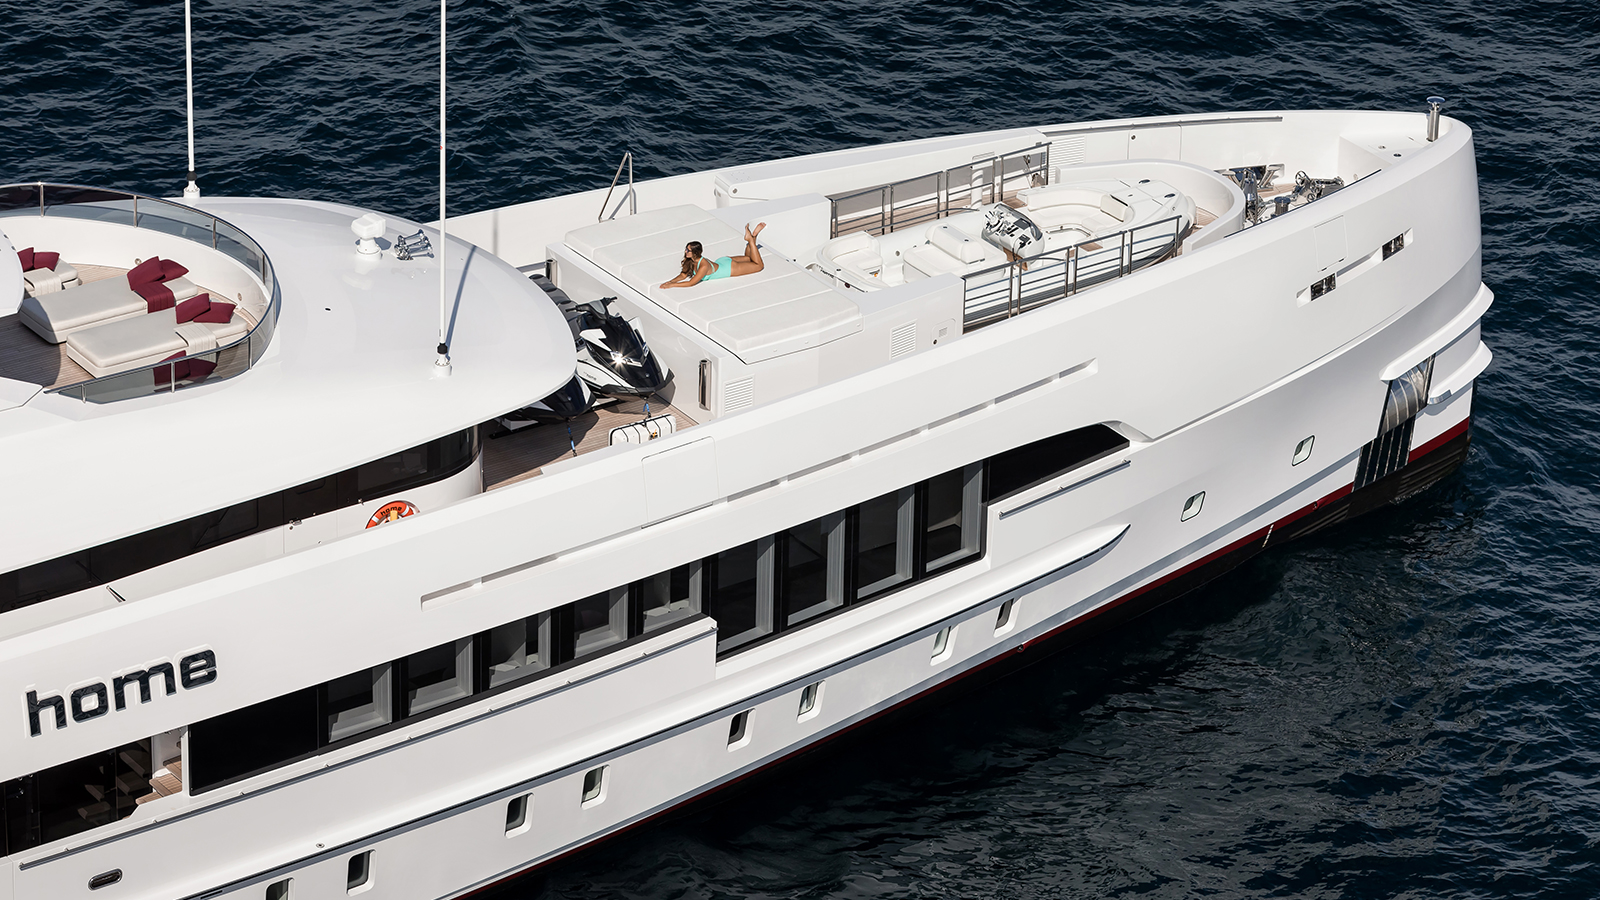 the-foredeck-of-the-50-metre-heesen-motor-yacht-home-credit-jeff-brown-breed-media